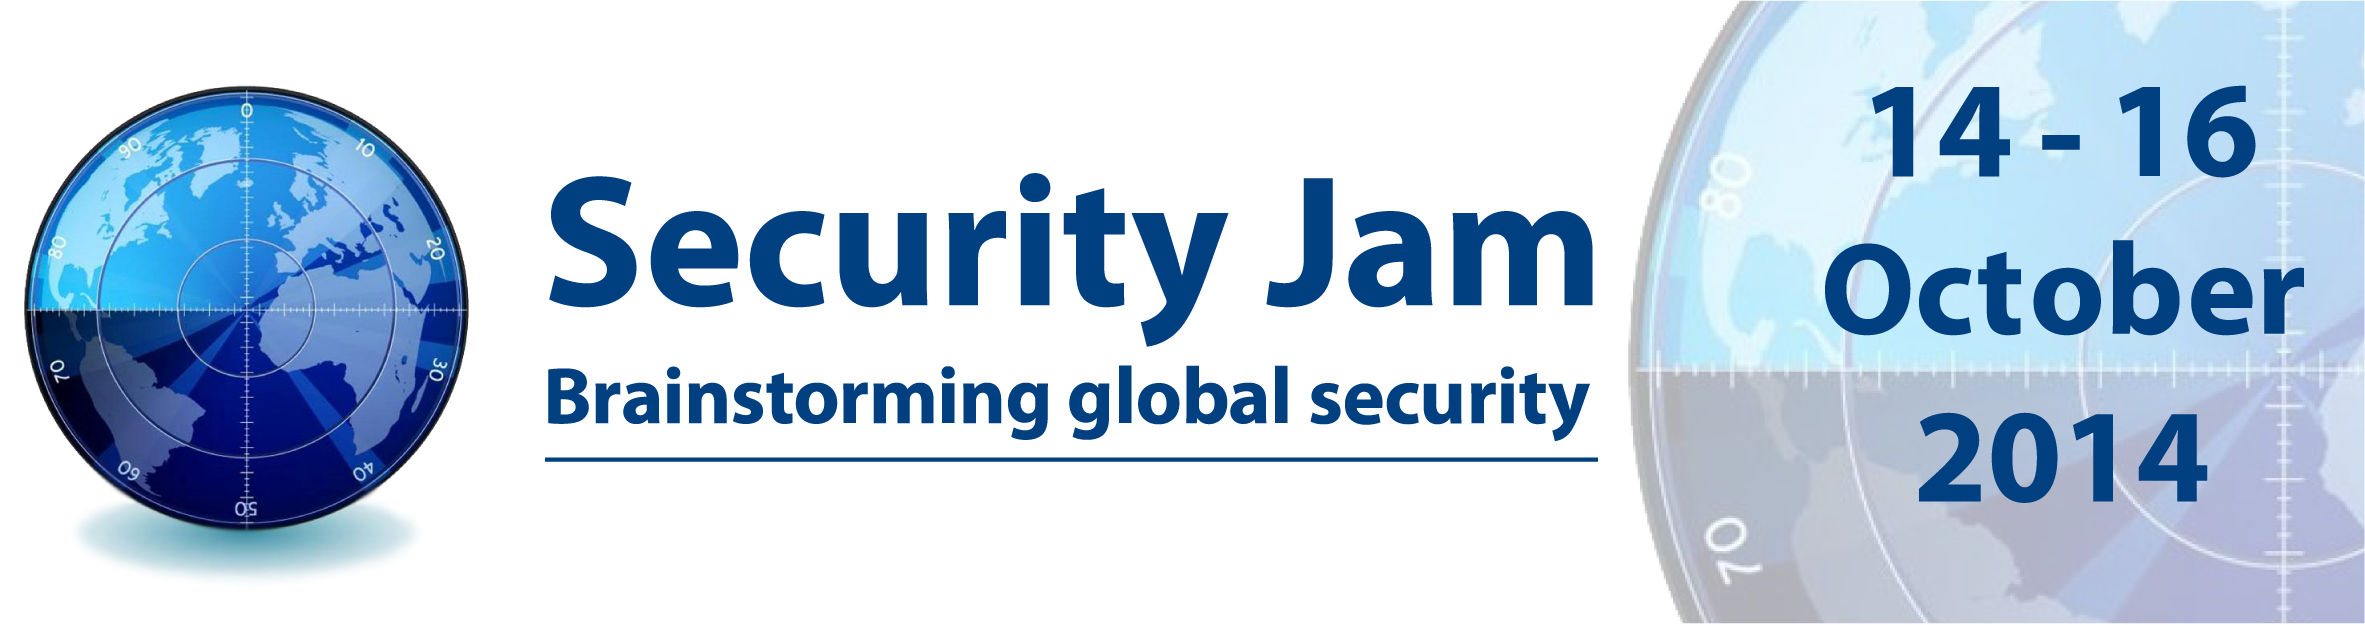 securityjam